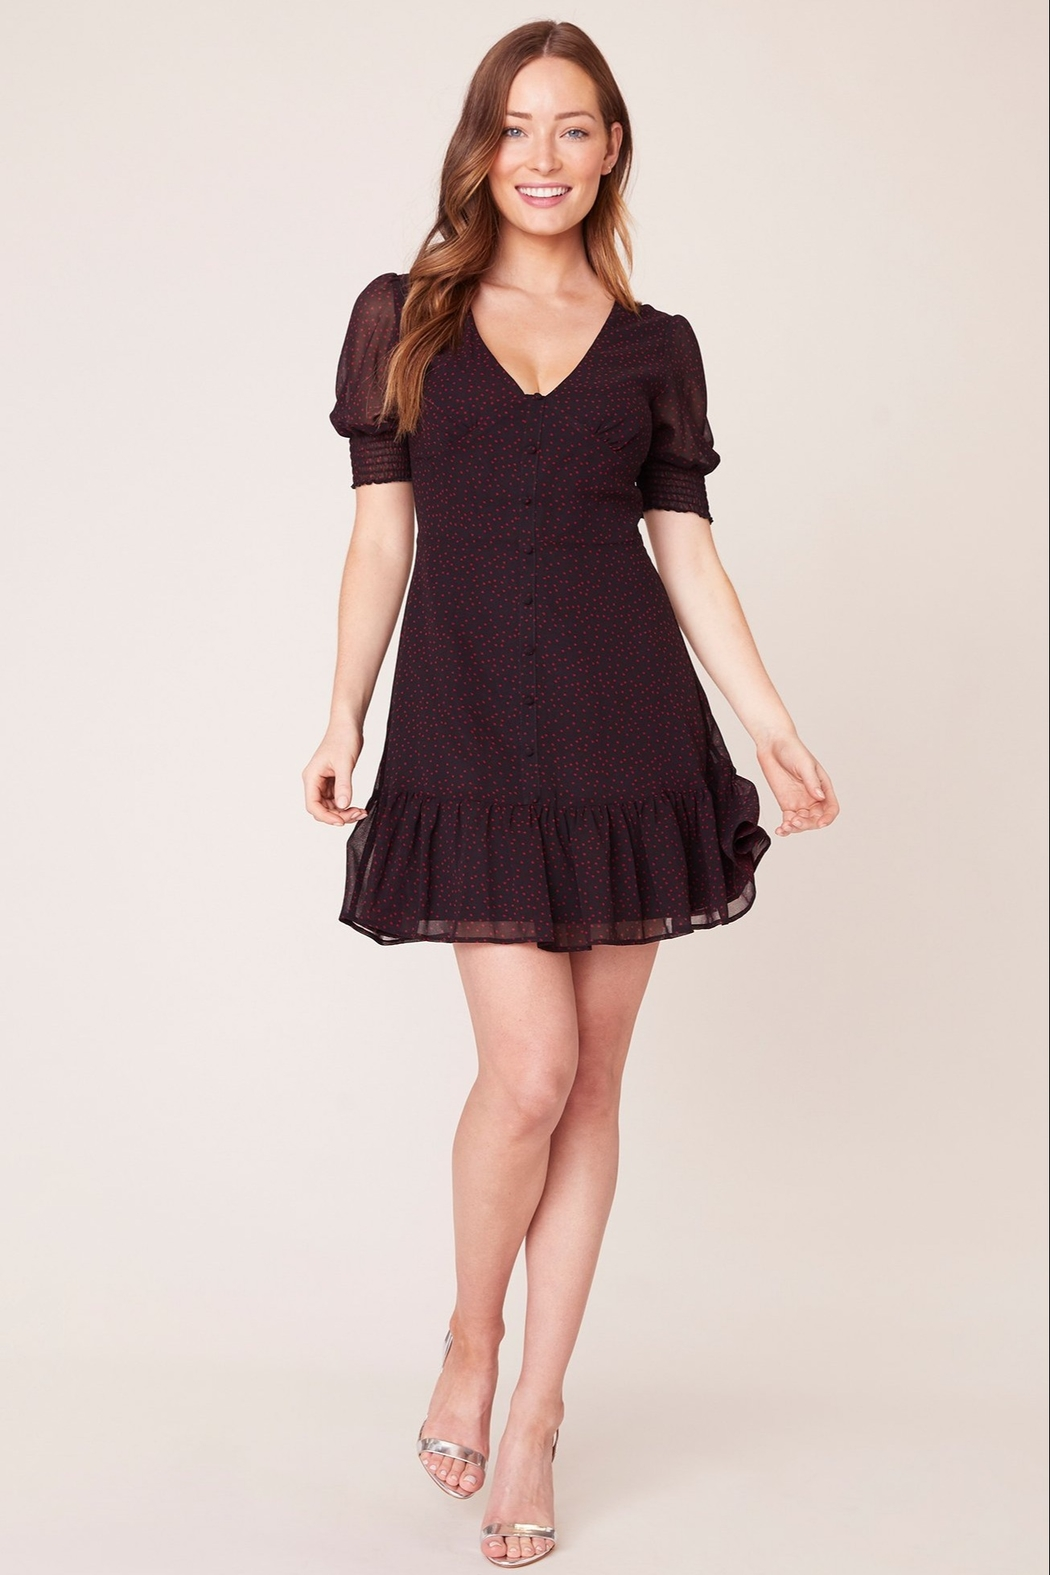 BB Dakota You Give me Fever Dress - Side Cropped Image